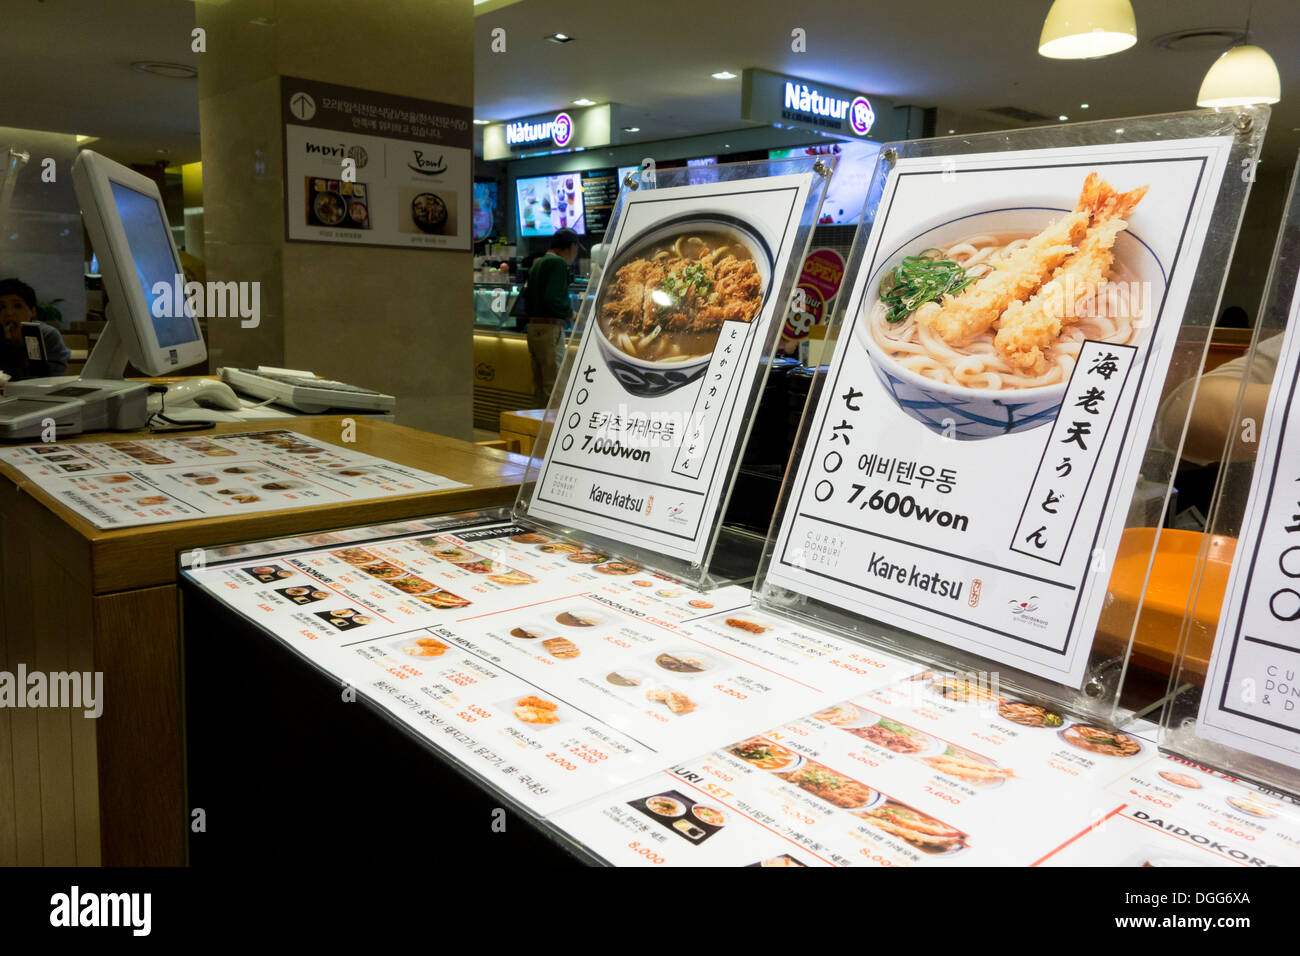 Picture Menu Of Japanese Restaurant In Typical Food Court In